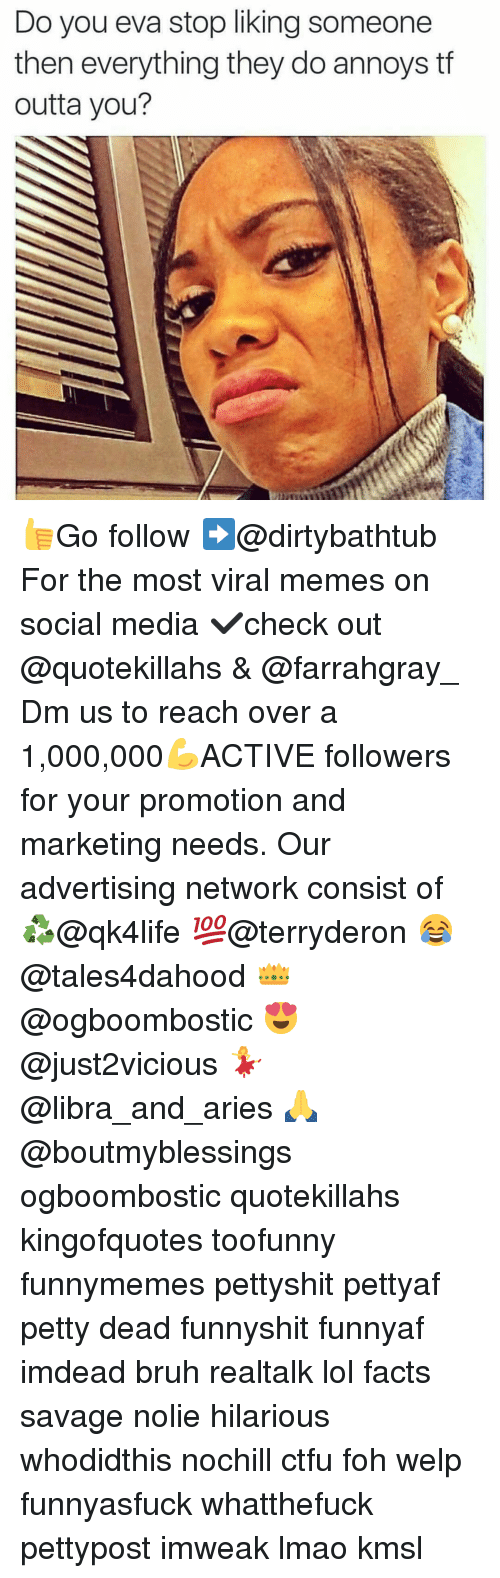 Stop Liking: Do you eva stop liking someone  then everything they do annoys tf  outta you? 👍Go follow ➡@dirtybathtub For the most viral memes on social media ✔check out @quotekillahs & @farrahgray_ Dm us to reach over a 1,000,000💪ACTIVE followers for your promotion and marketing needs. Our advertising network consist of ♻@qk4life 💯@terryderon 😂@tales4dahood 👑@ogboombostic 😍@just2vicious 💃@libra_and_aries 🙏@boutmyblessings ogboombostic quotekillahs kingofquotes toofunny funnymemes pettyshit pettyaf petty dead funnyshit funnyaf imdead bruh realtalk lol facts savage nolie hilarious whodidthis nochill ctfu foh welp funnyasfuck whatthefuck pettypost imweak lmao kmsl